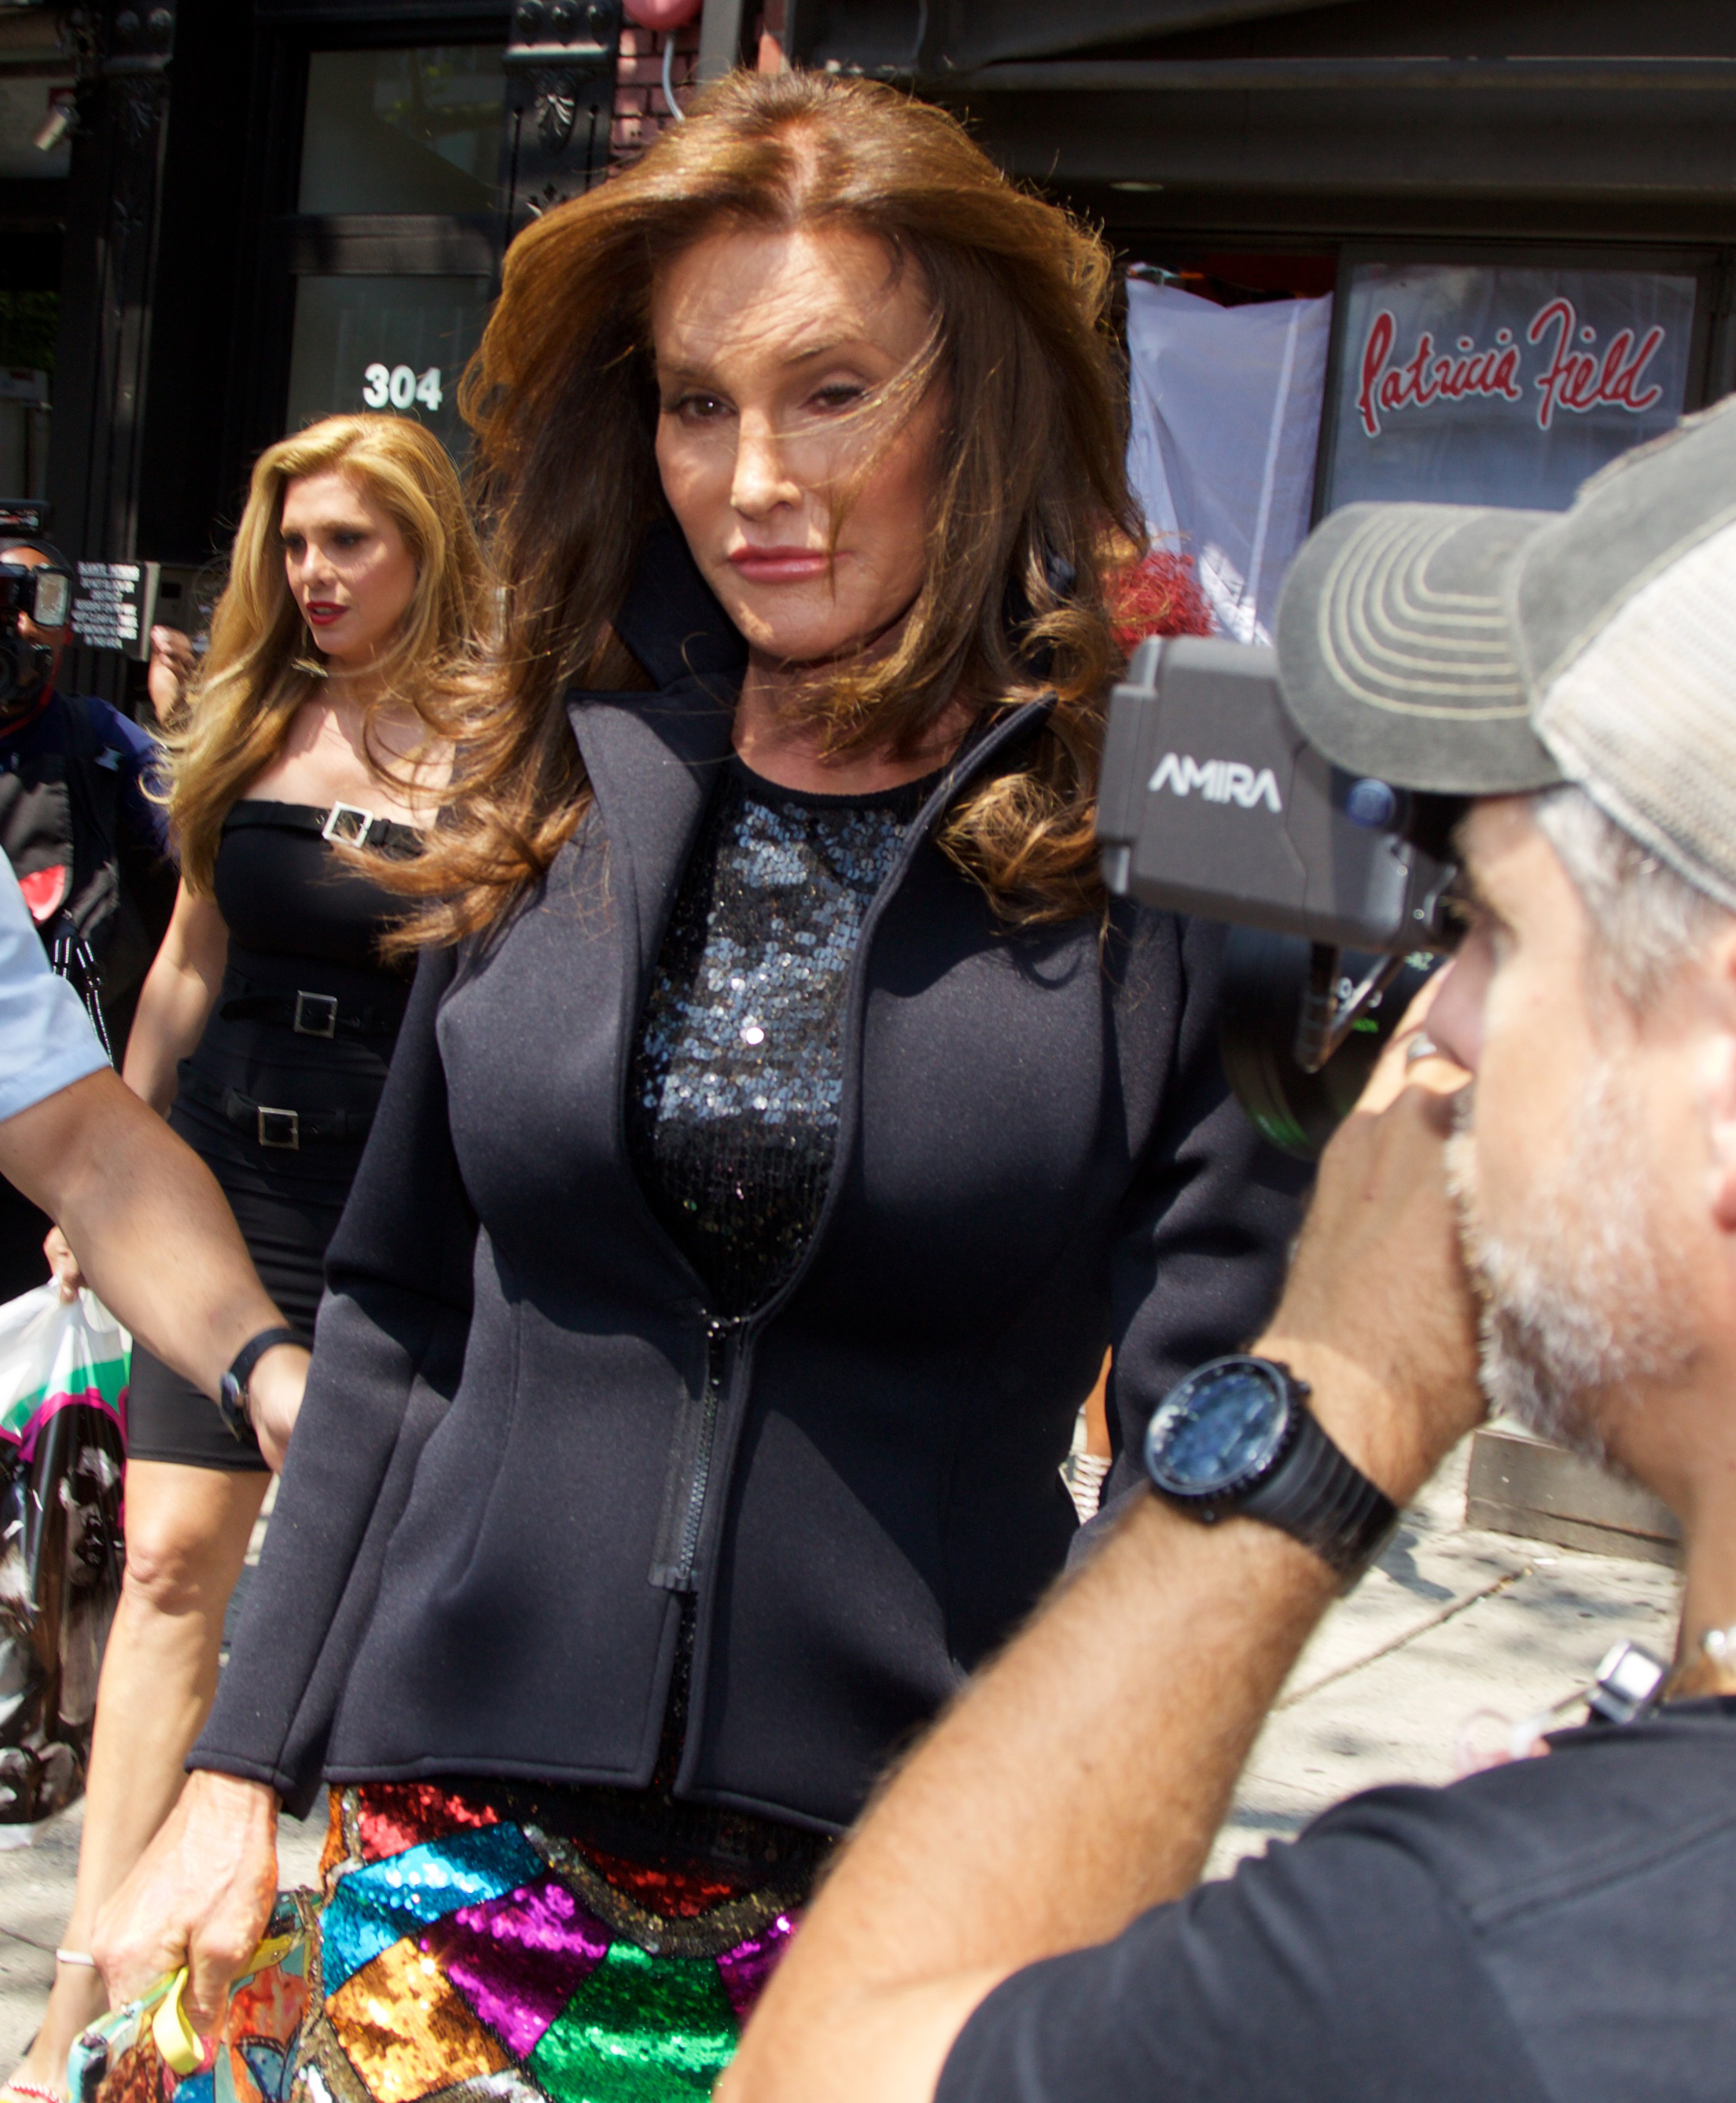 Caitlyn Jenner and Candis Canye